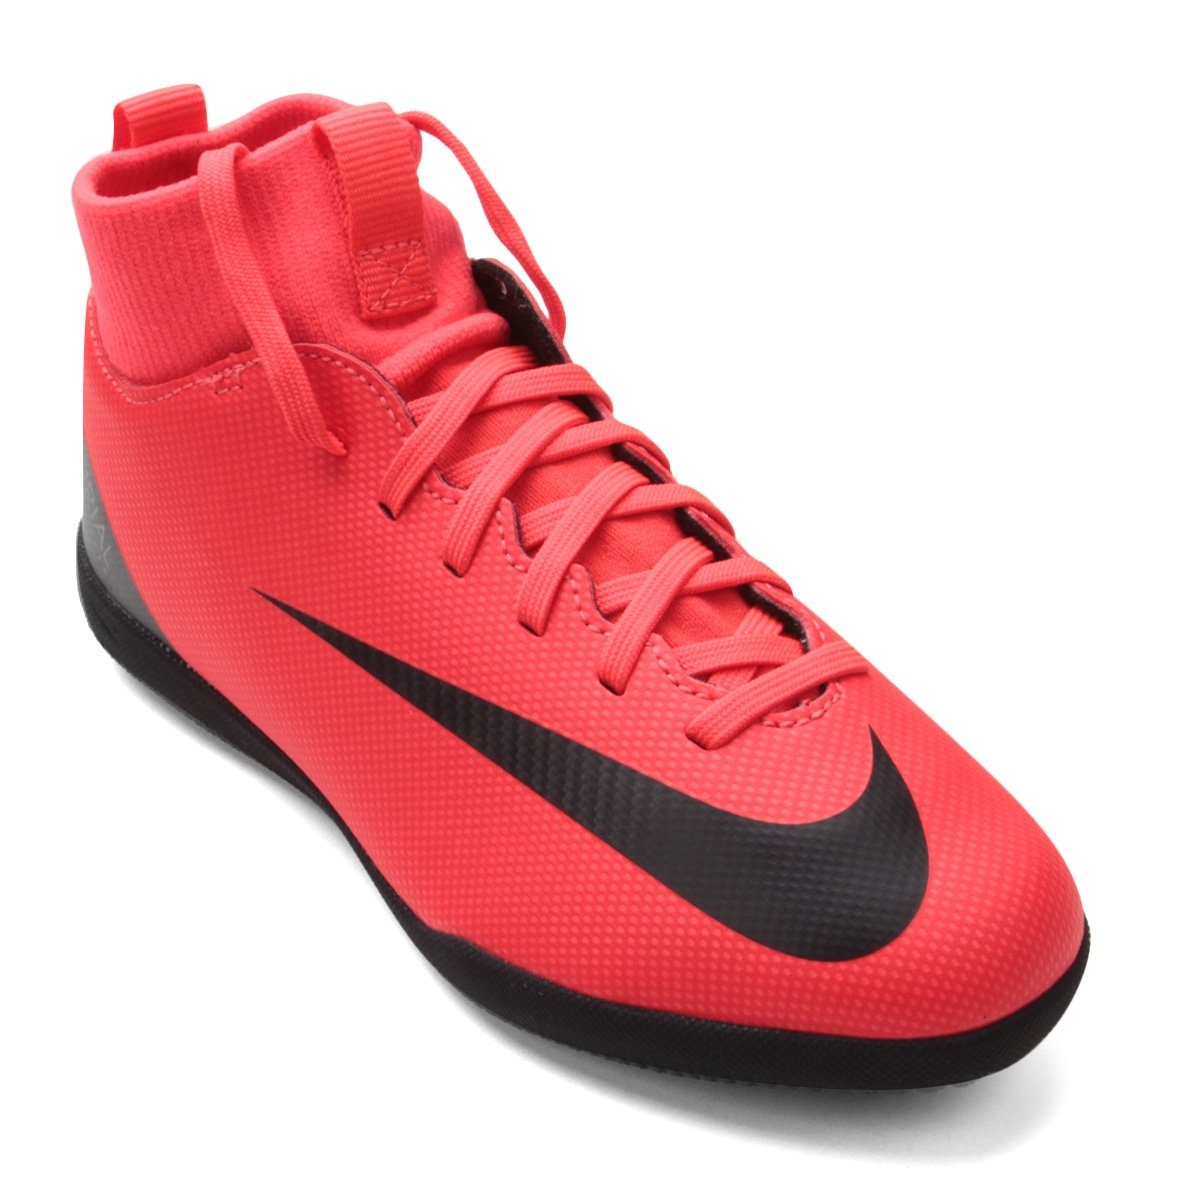 493d9ec7ee Chuteira Futsal Infantil Nike Mercurial Superfly 6 Club CR7 IC